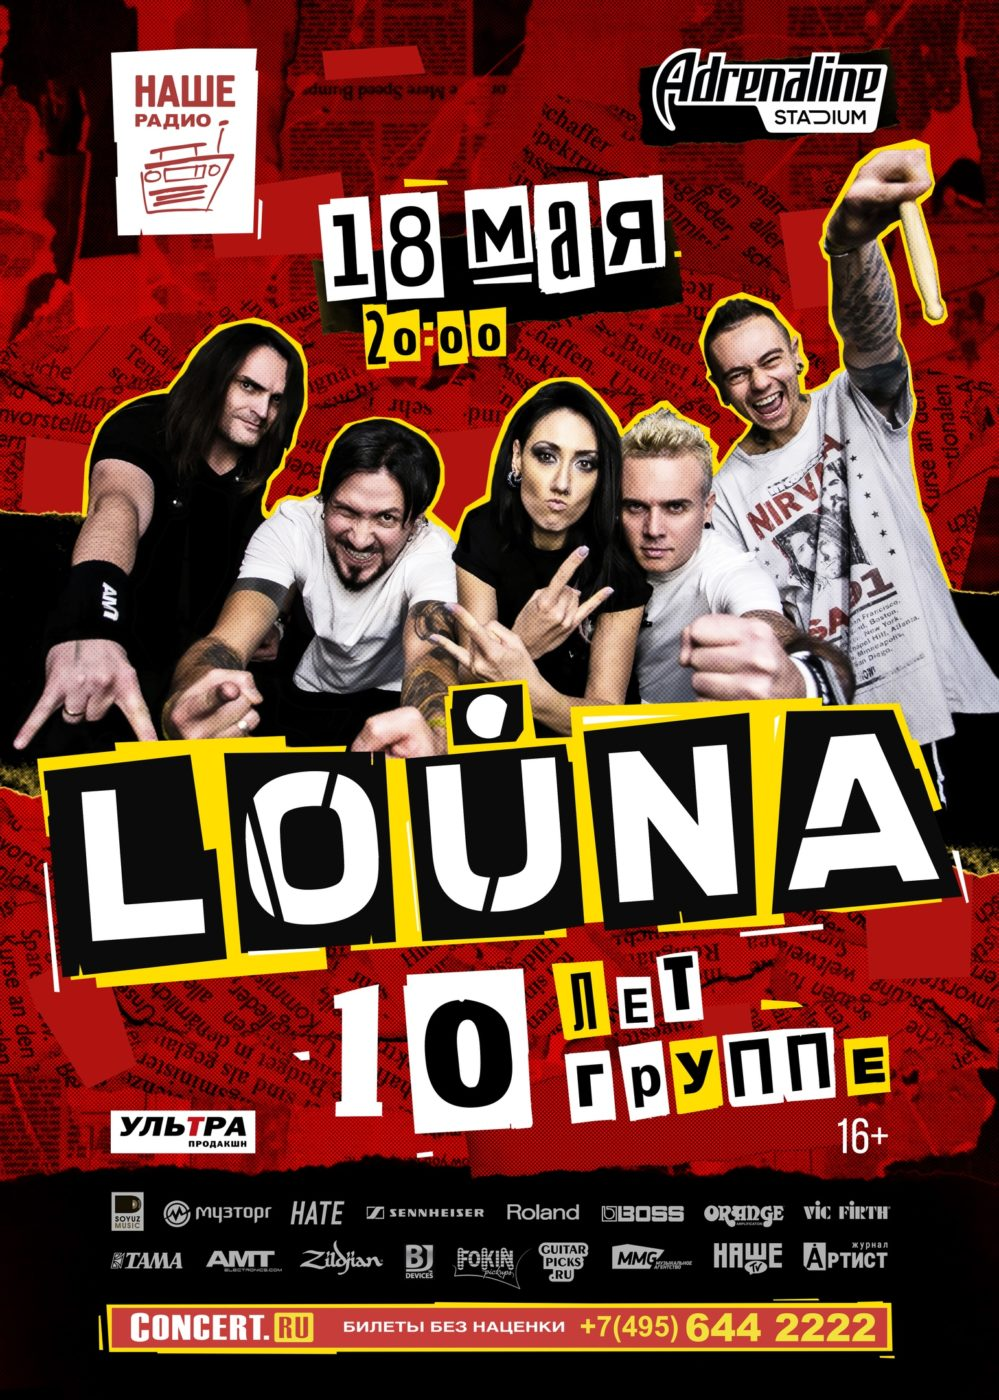 LOUNA в Adrenaline Stadium 18.05.2019